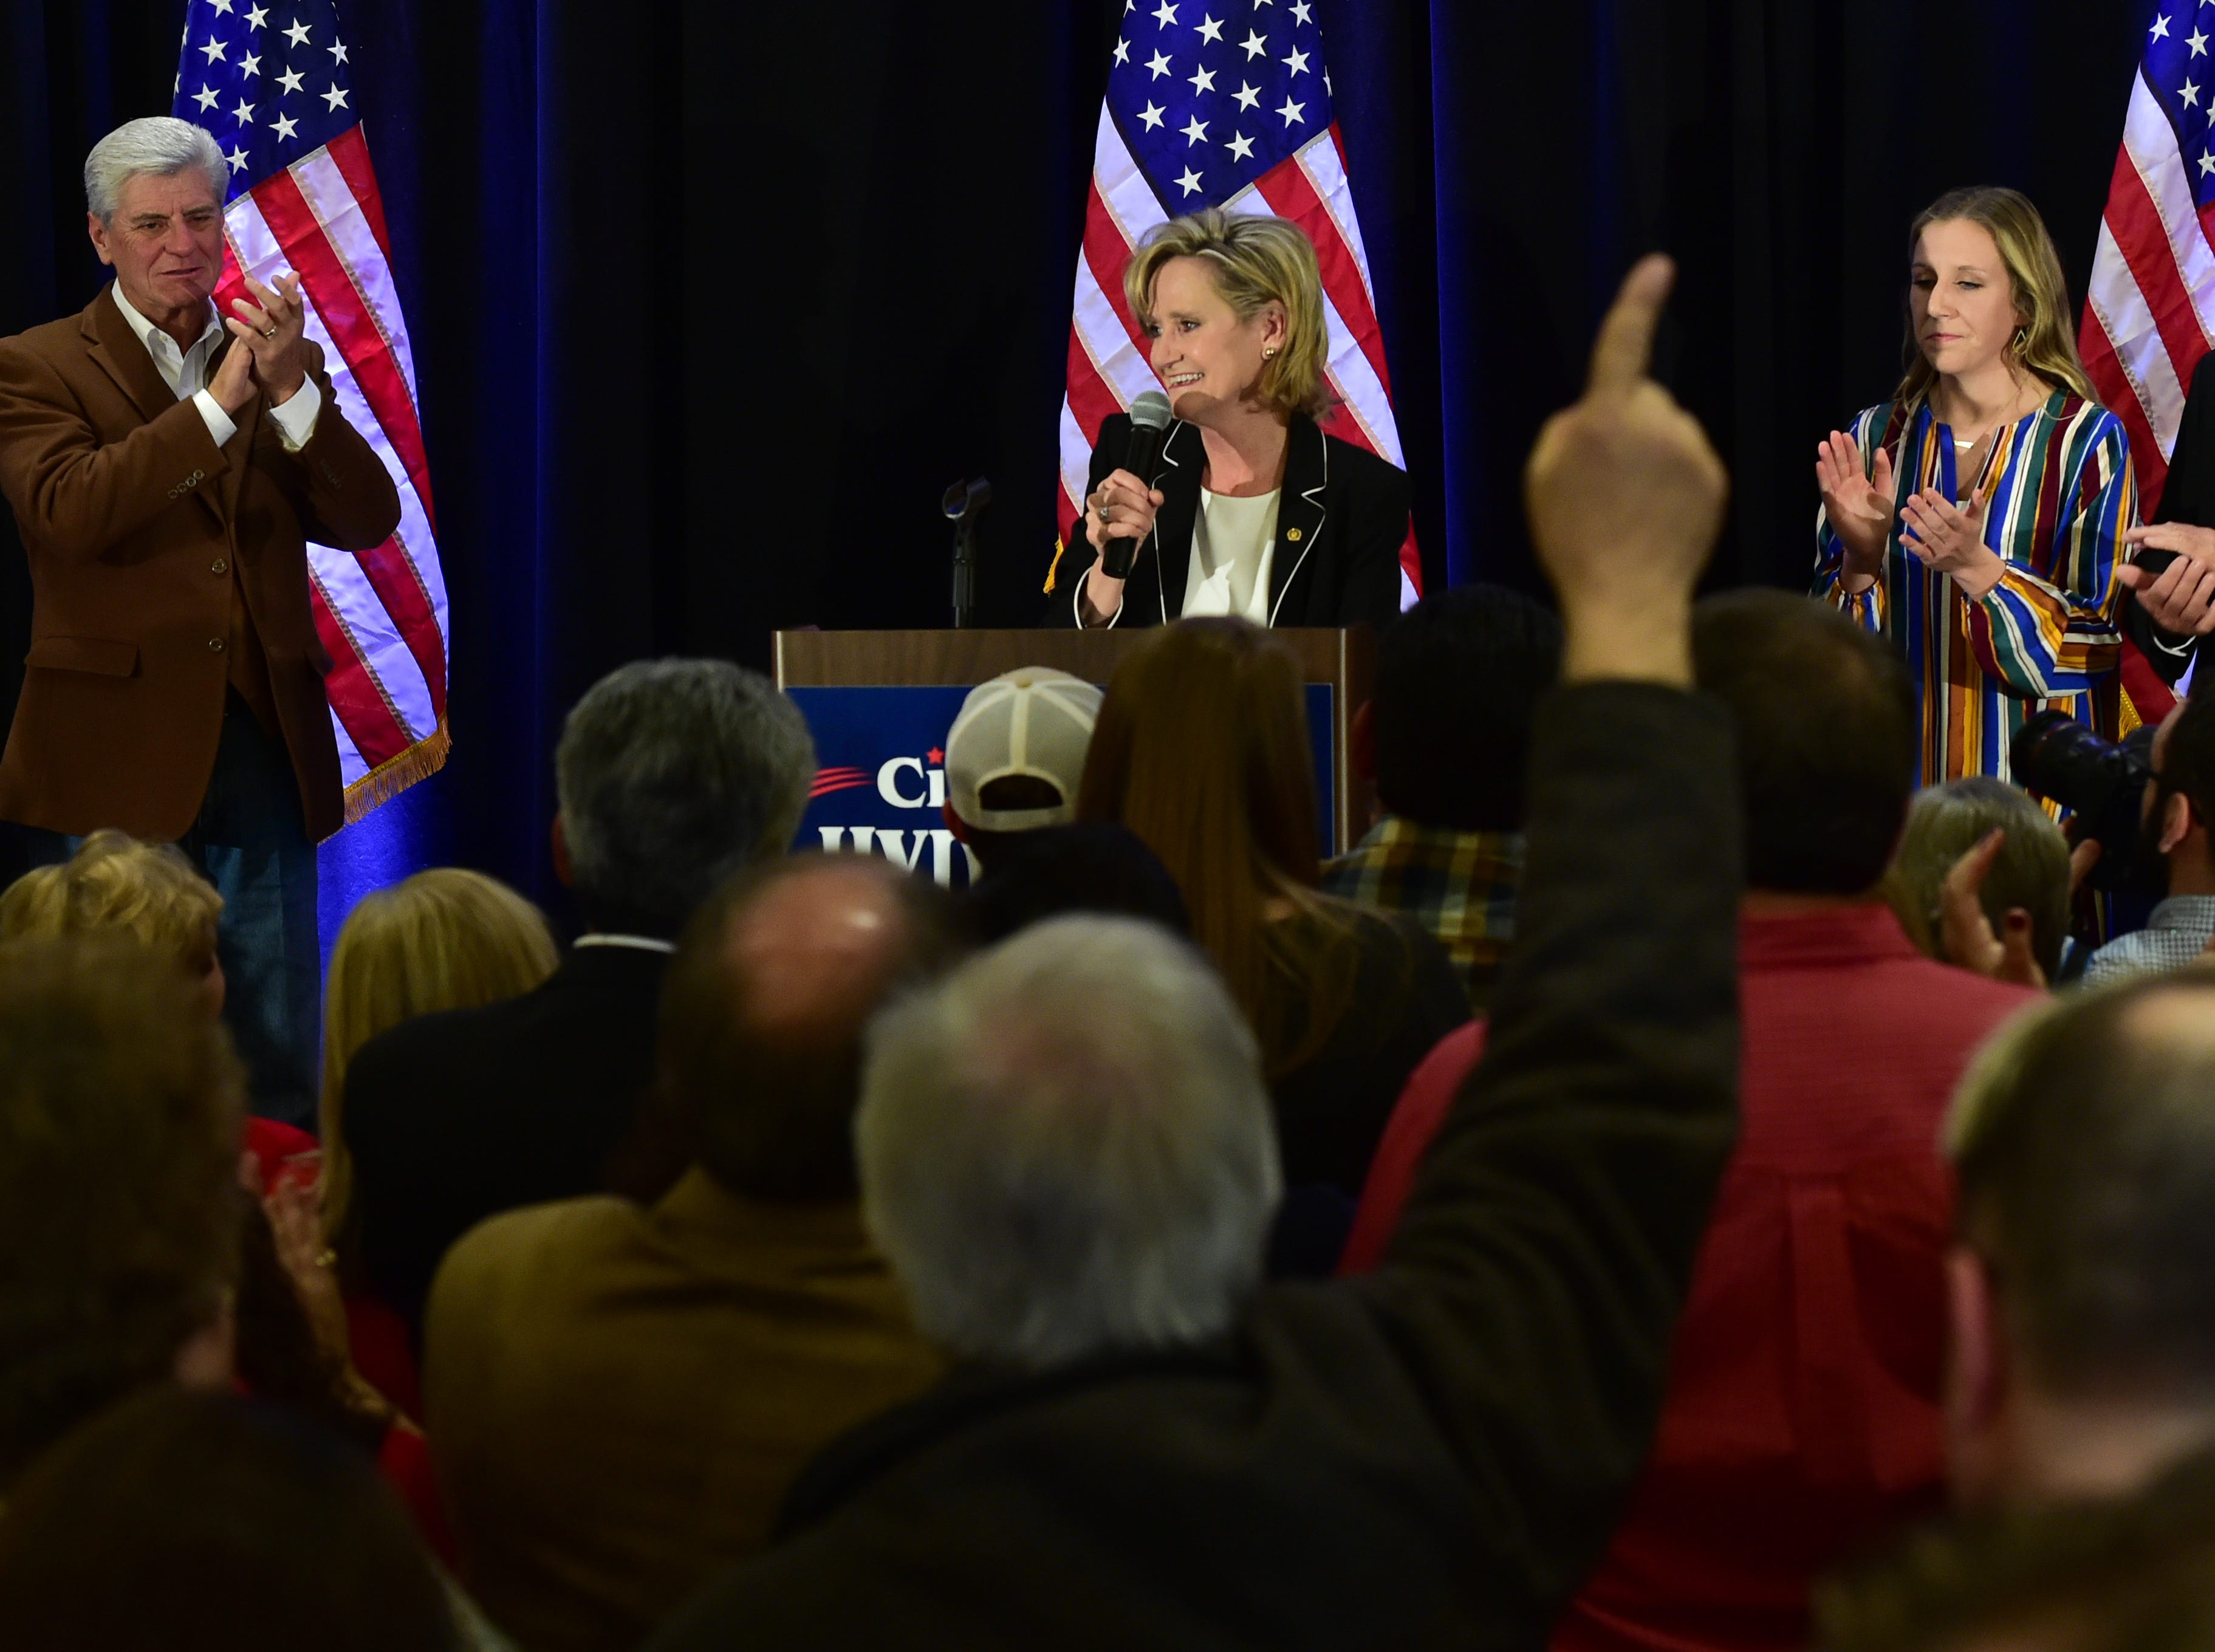 U.S. Sen. Cindy Hyde-Smith gives her acceptance speech to attendees of her senate campaign runoff watch party at the Westin Hotel in Jackson, Miss. She was joined on stage by family and Miss. Gov. Phil Bryant. Tuesday, Nov. 27, 2018.